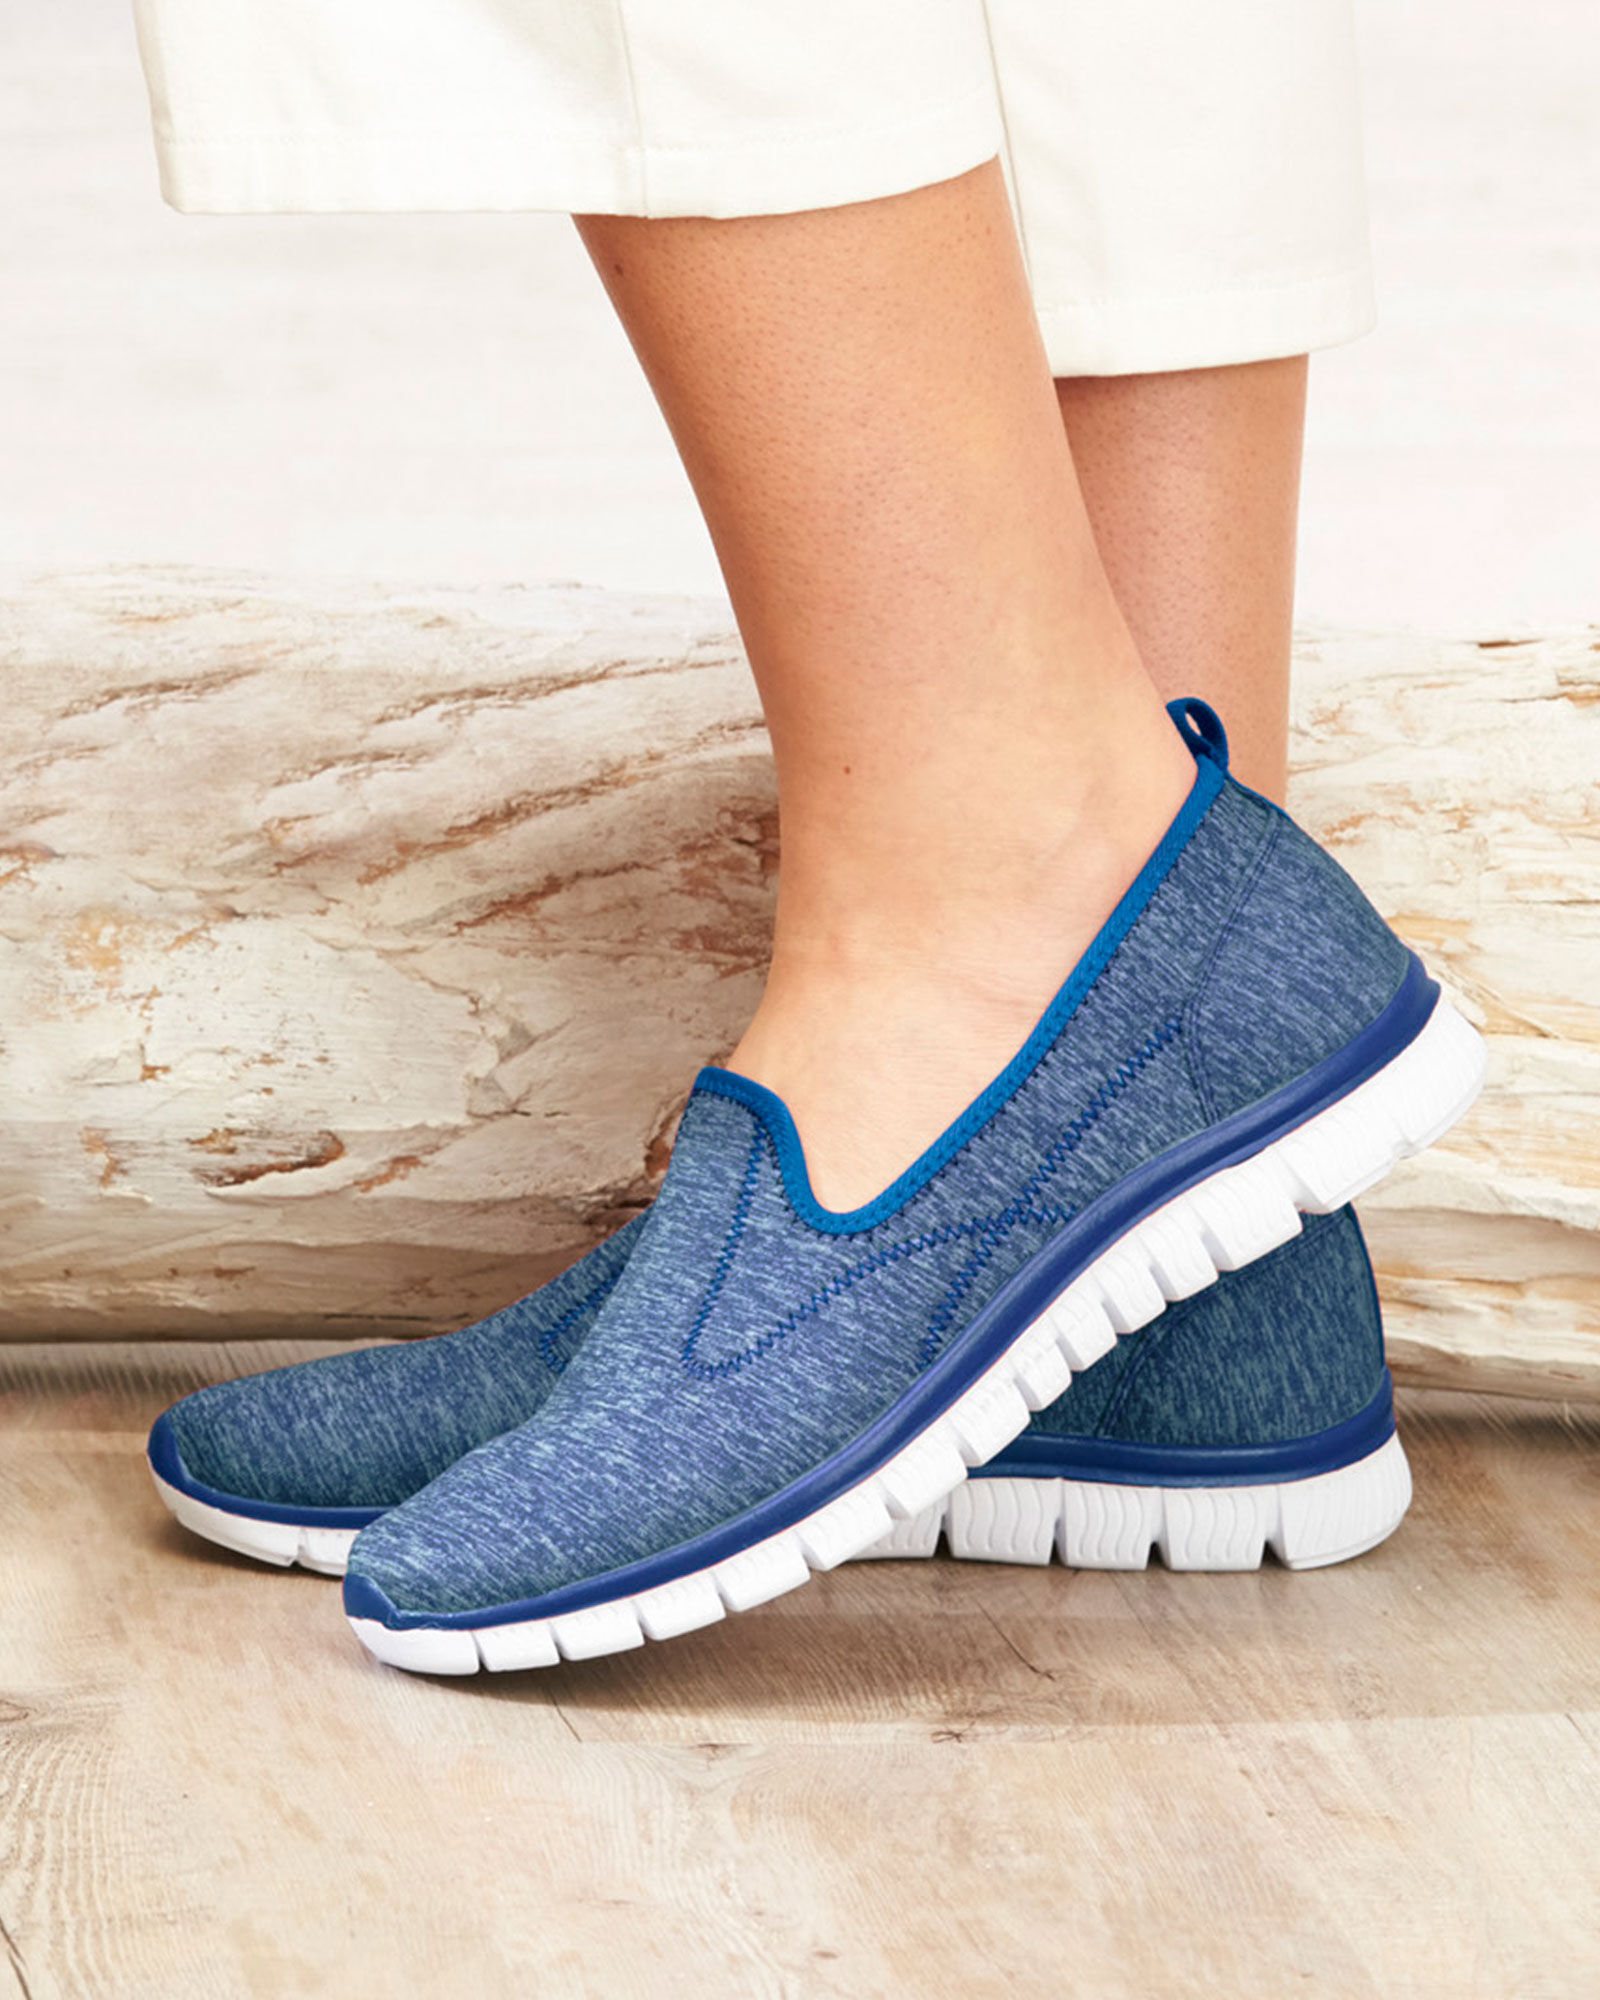 Flexi Sole Shoes at Cotton Traders